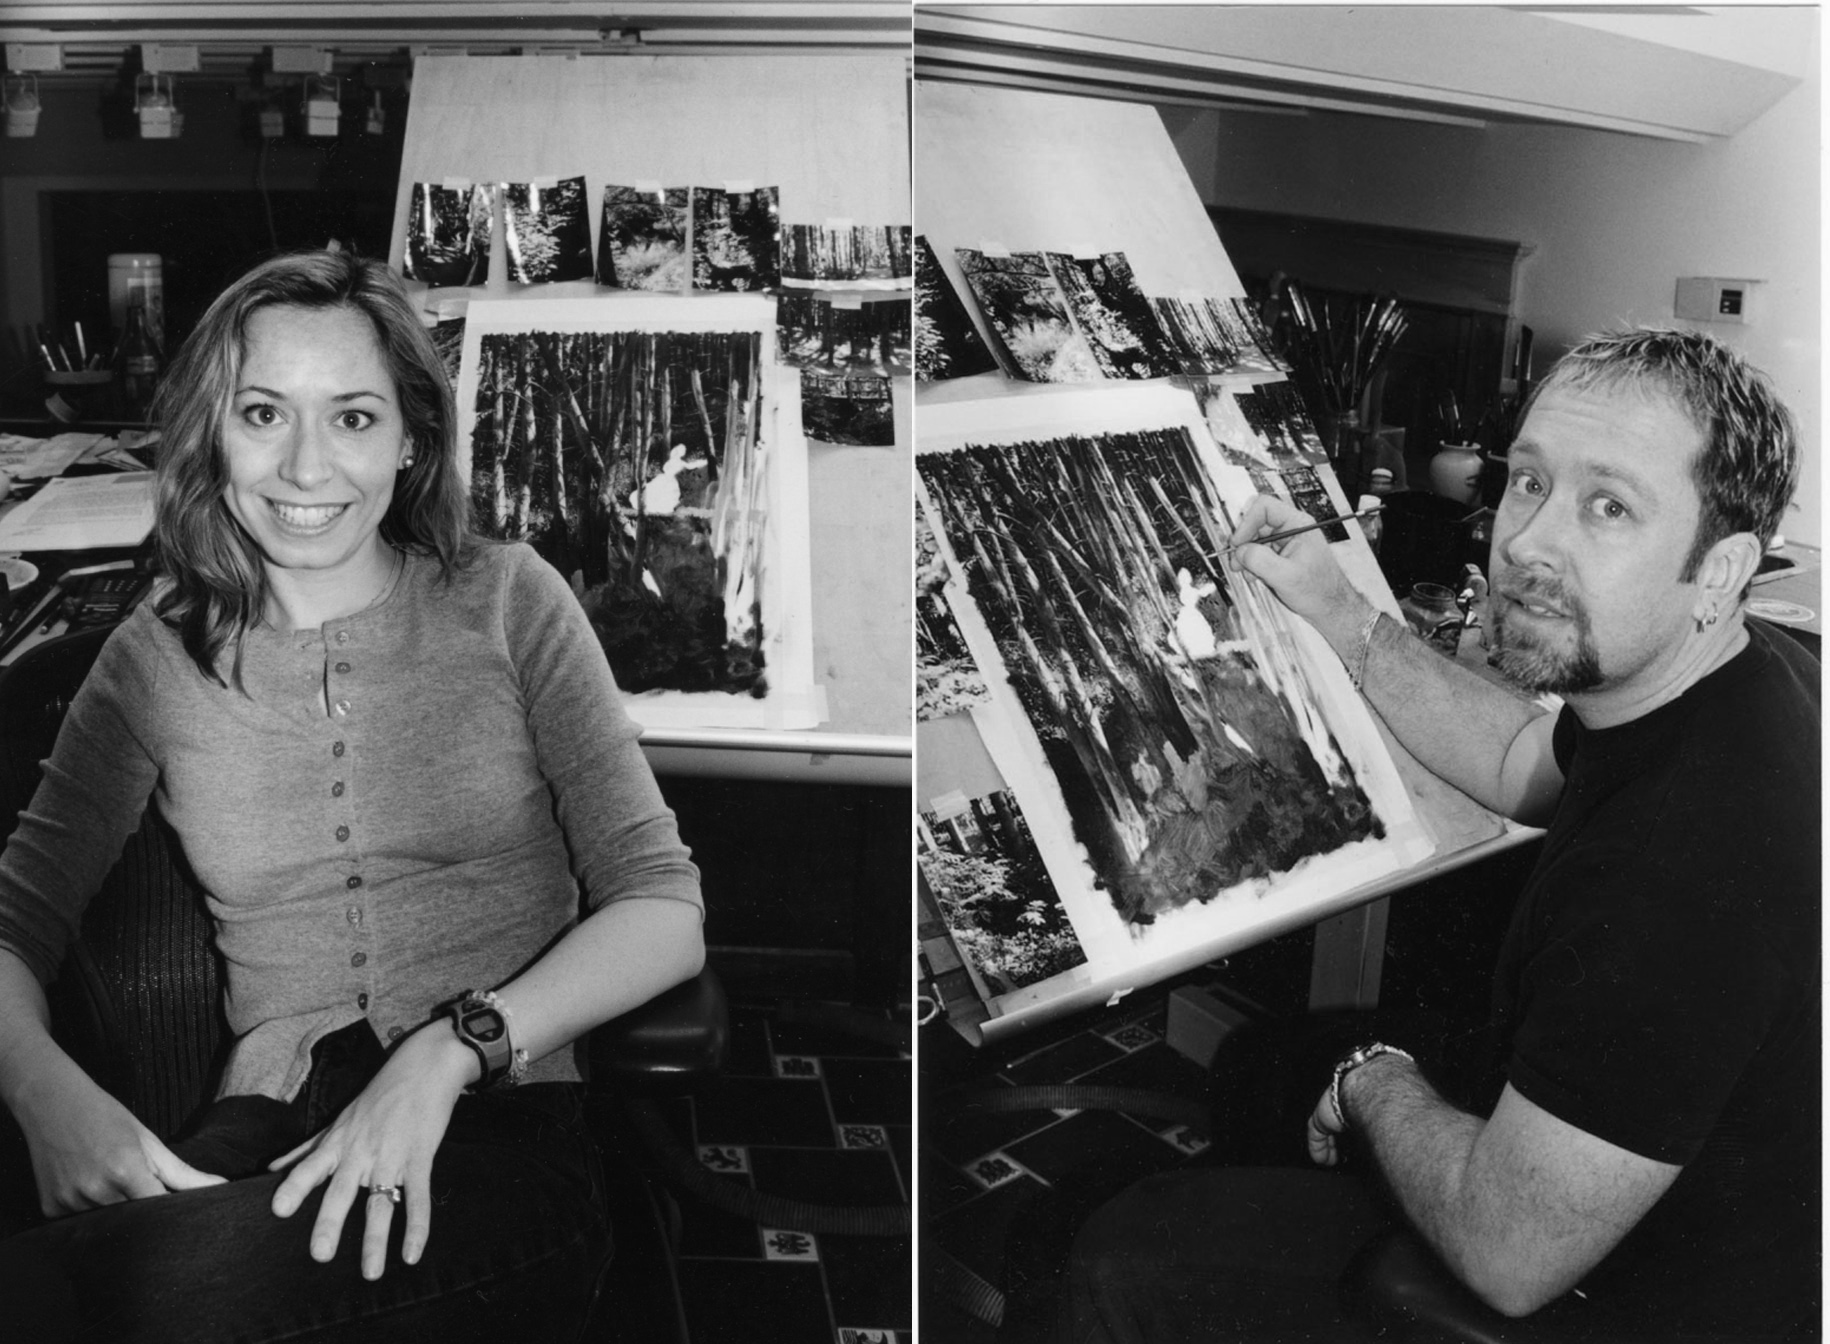 Rick and Laura in the studio